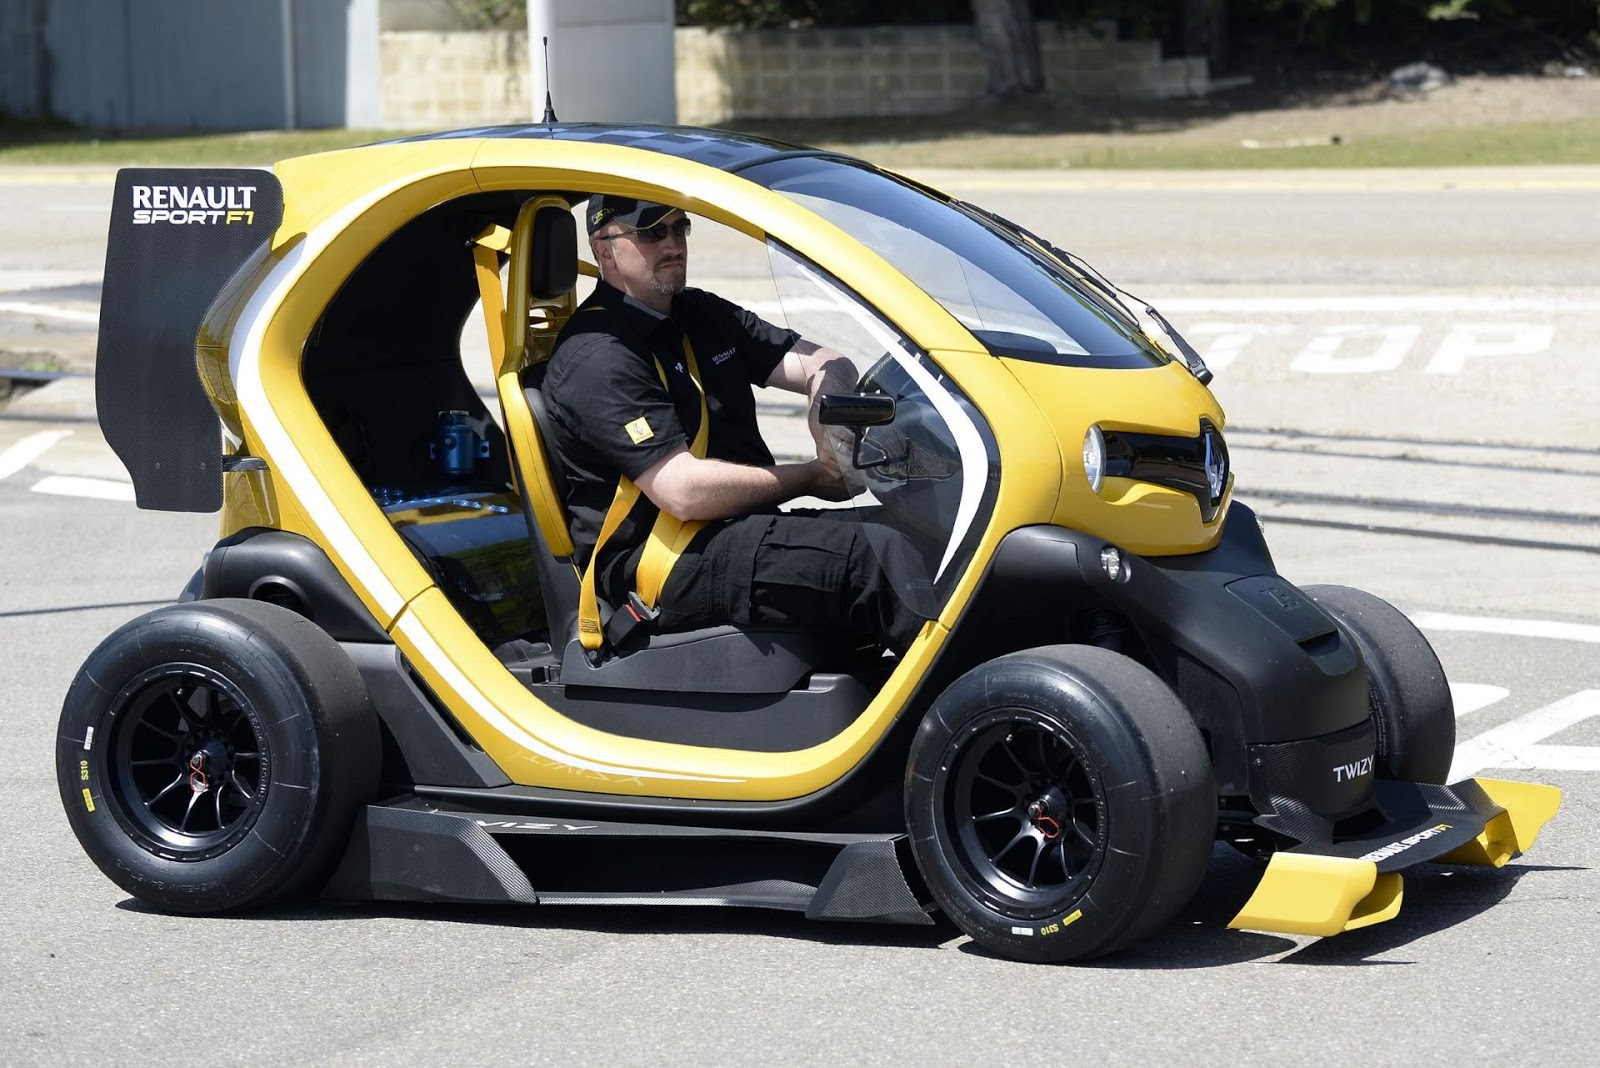 renault twizy rs f1 concept 2013 hottest car wallpapers. Black Bedroom Furniture Sets. Home Design Ideas